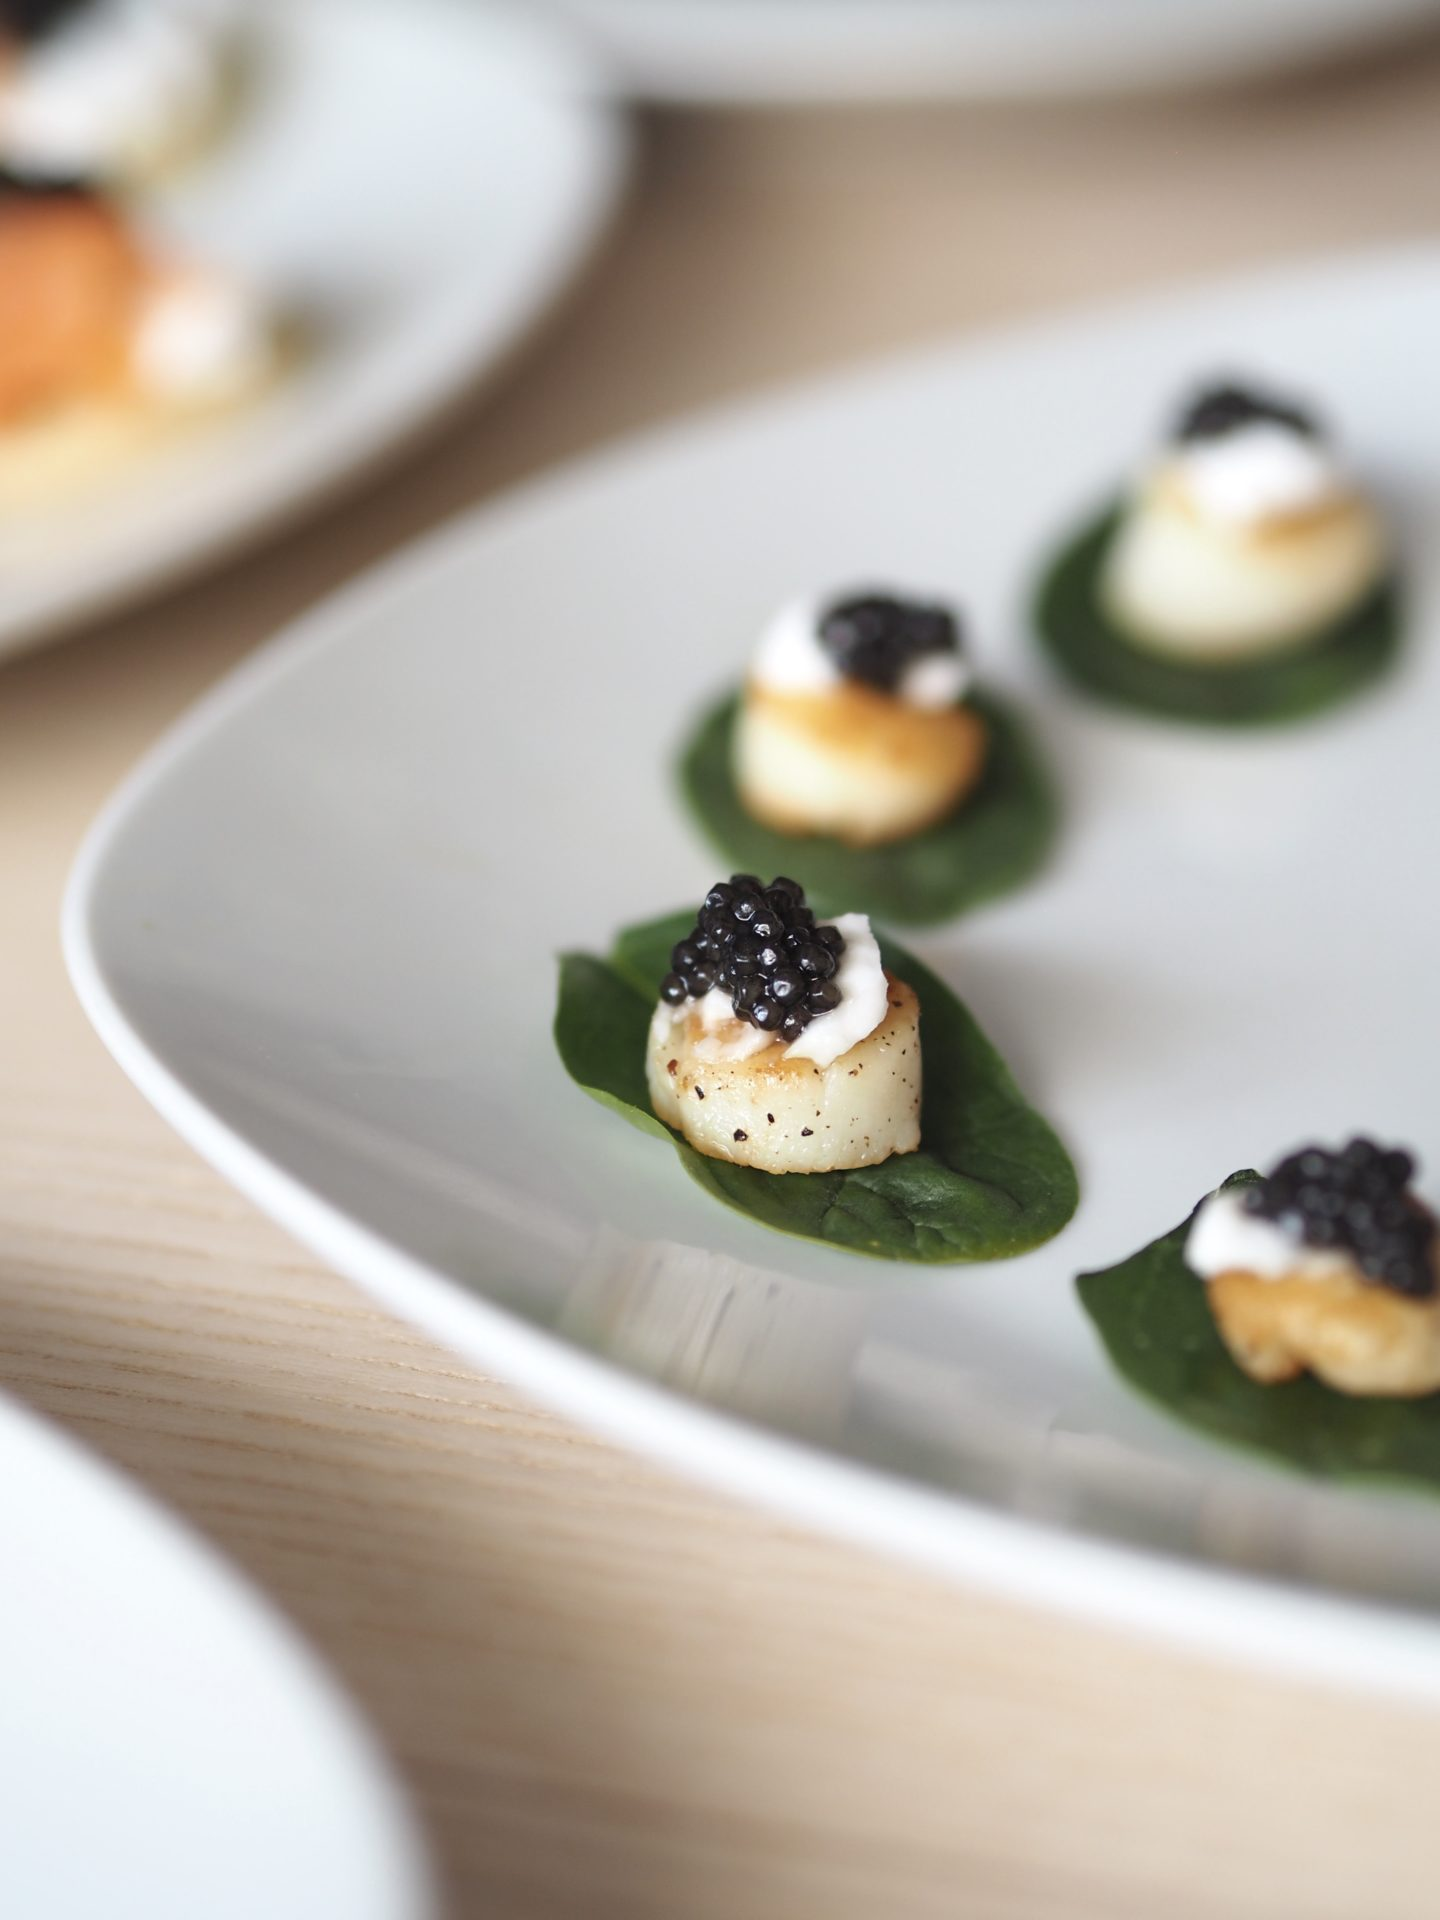 Caviar party appetizers with scallops